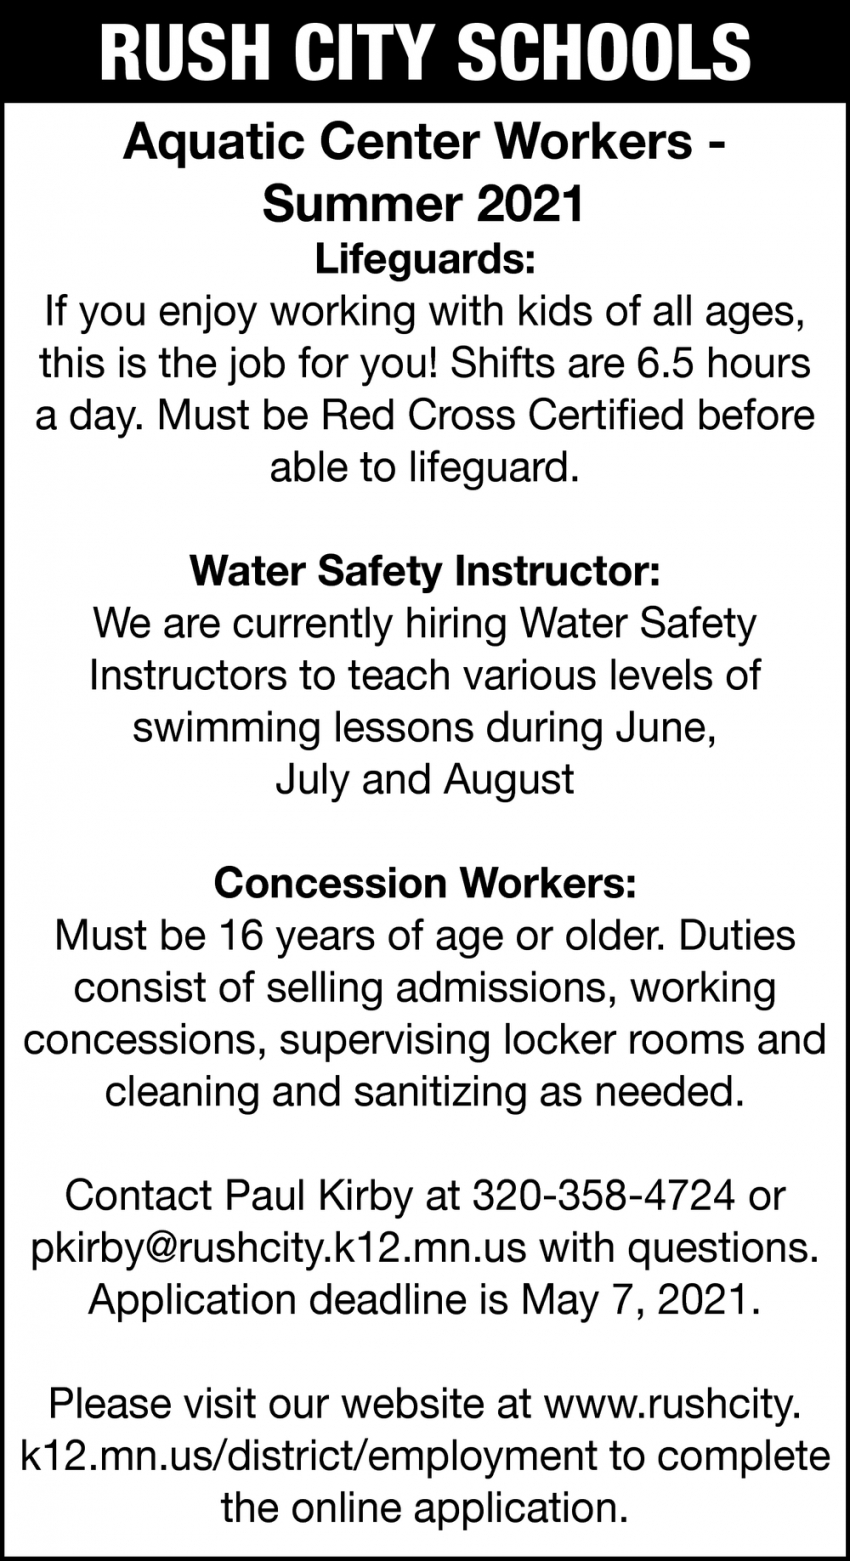 Lifeguards, Water Safety Instructor, Concession Workers